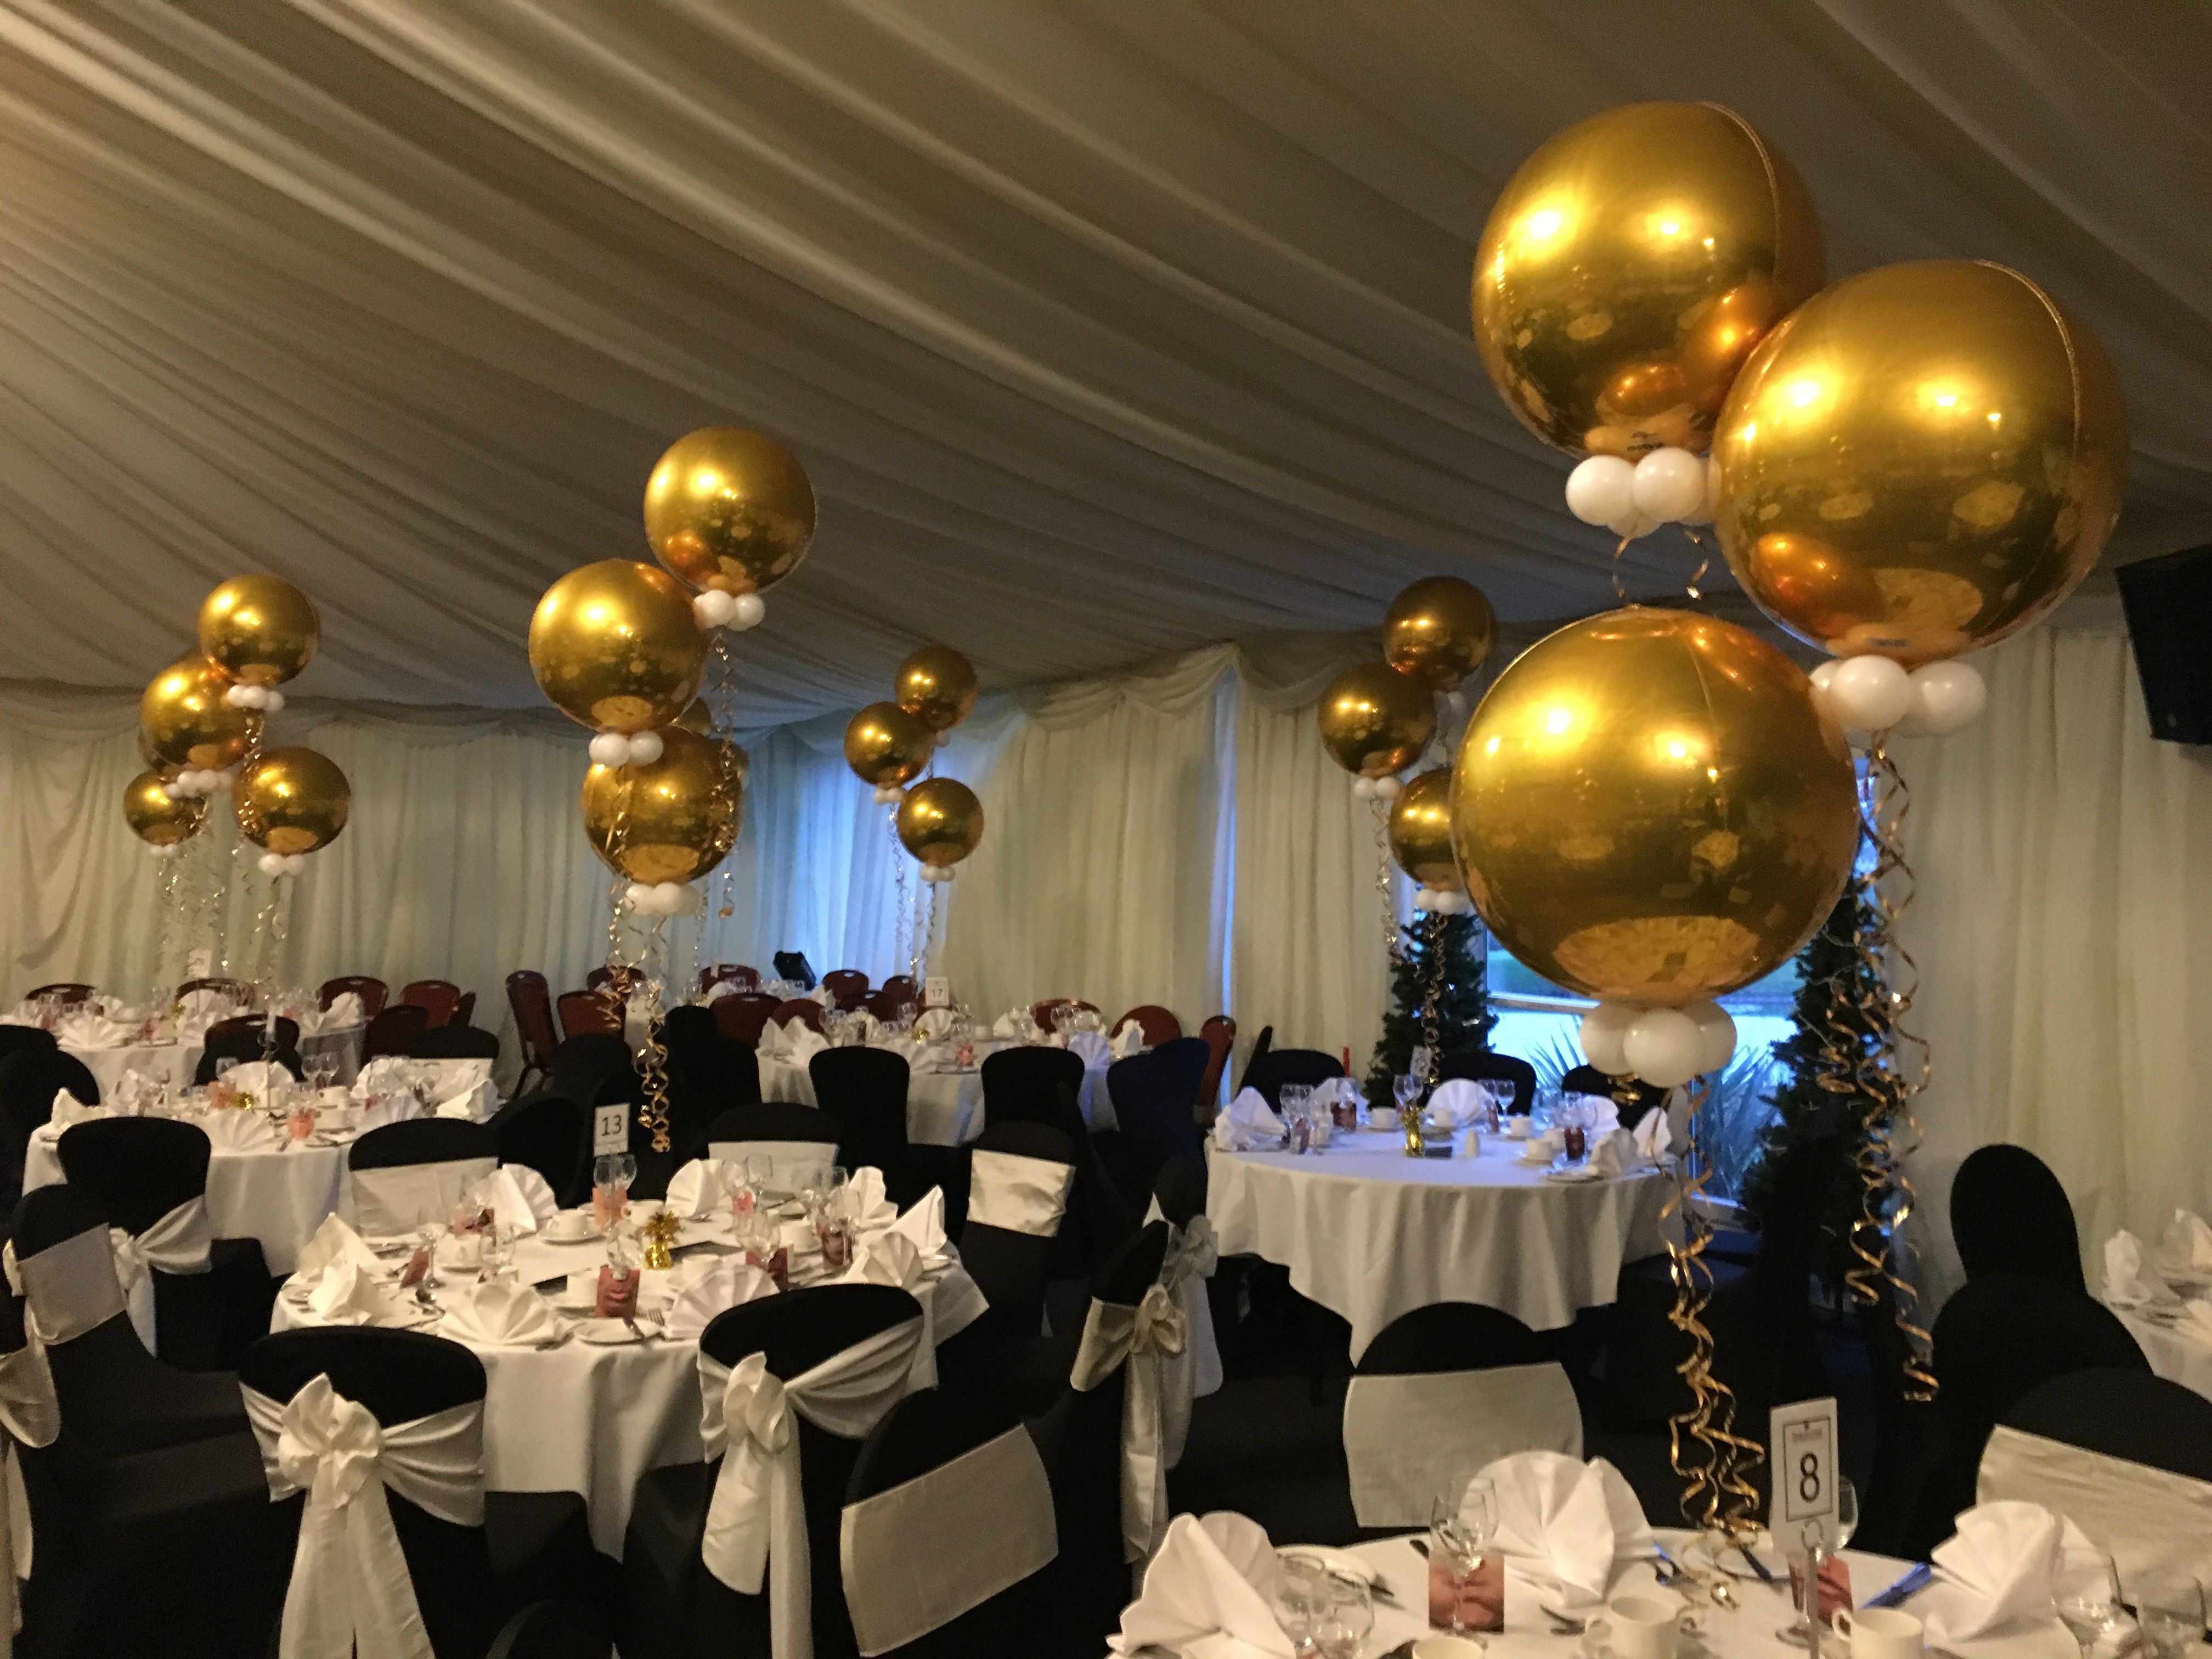 Pin By Sharon Sweeney On Balloons Gold Table Centerpieces Black And Gold Centerpieces Balloon Table Centerpieces